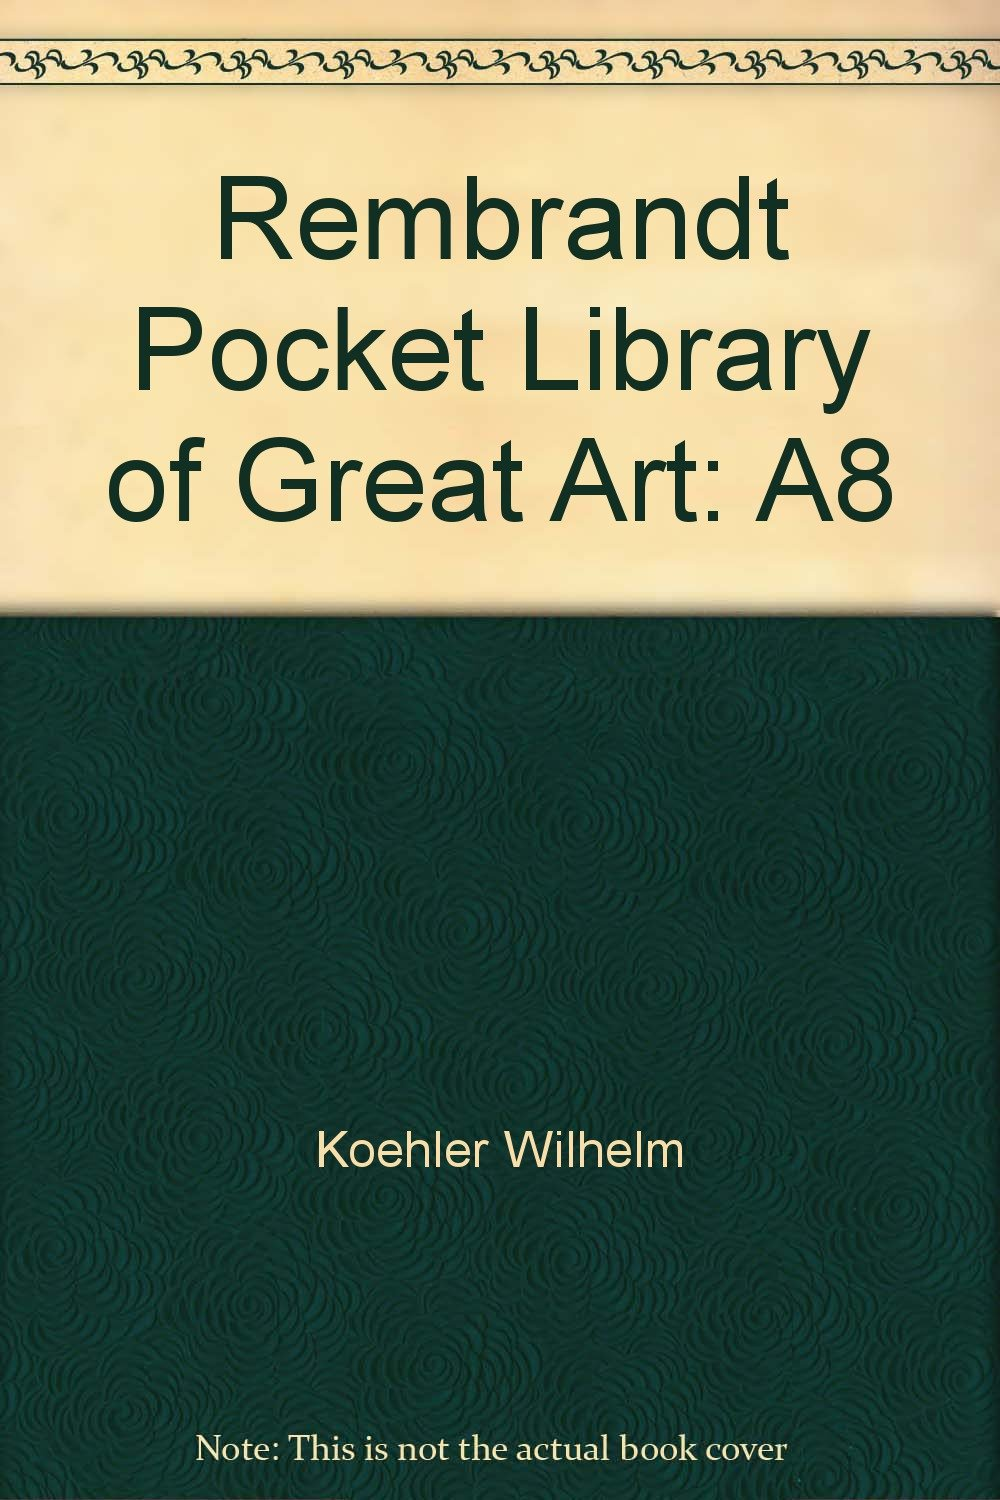 rembrandt pocket library of great art a8